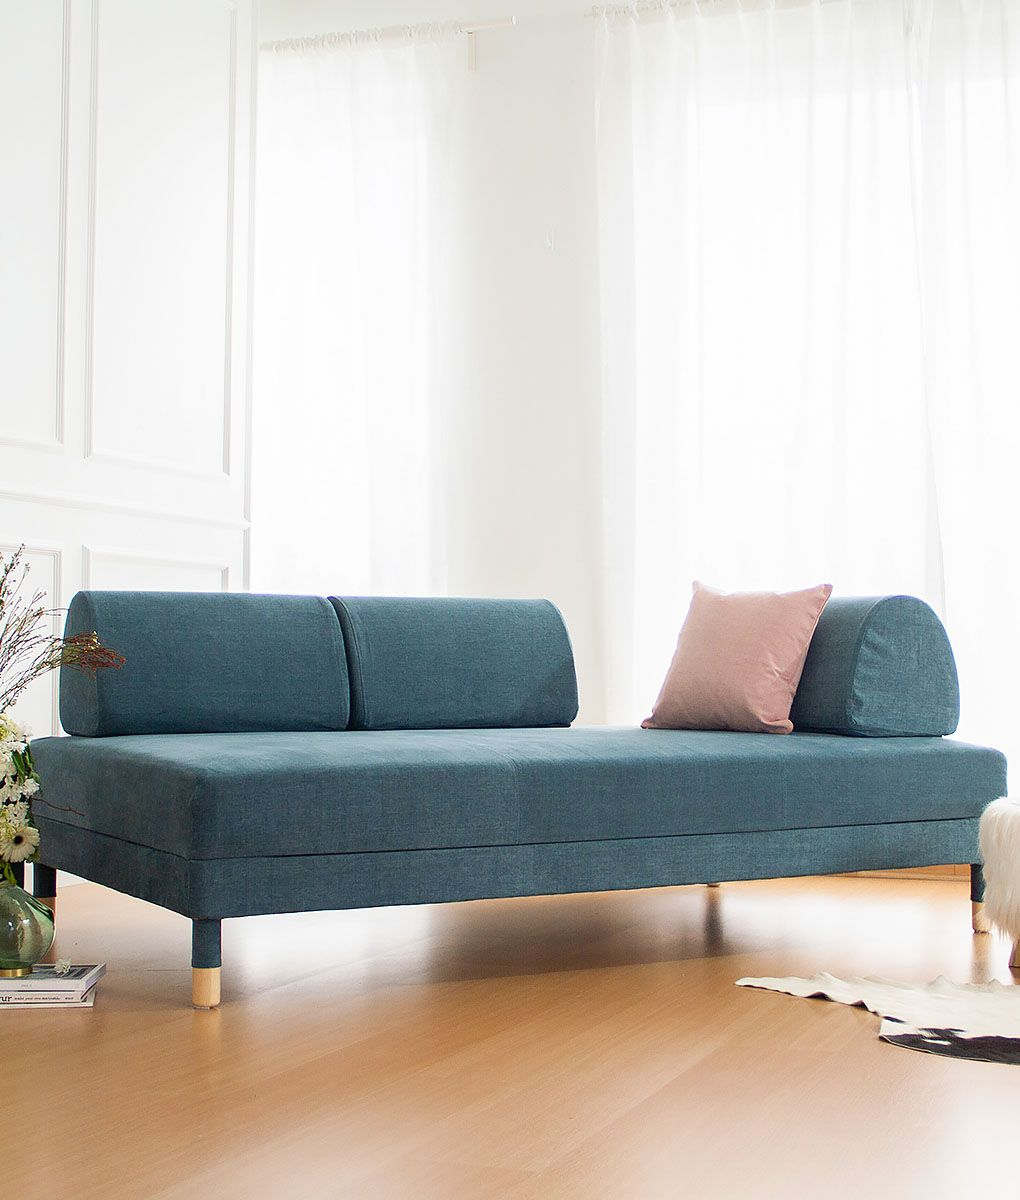 Ikea Flottebo Sofa Bed Ikea Flottebo Sofa Covers Madison Teal Cotton Blends Couch